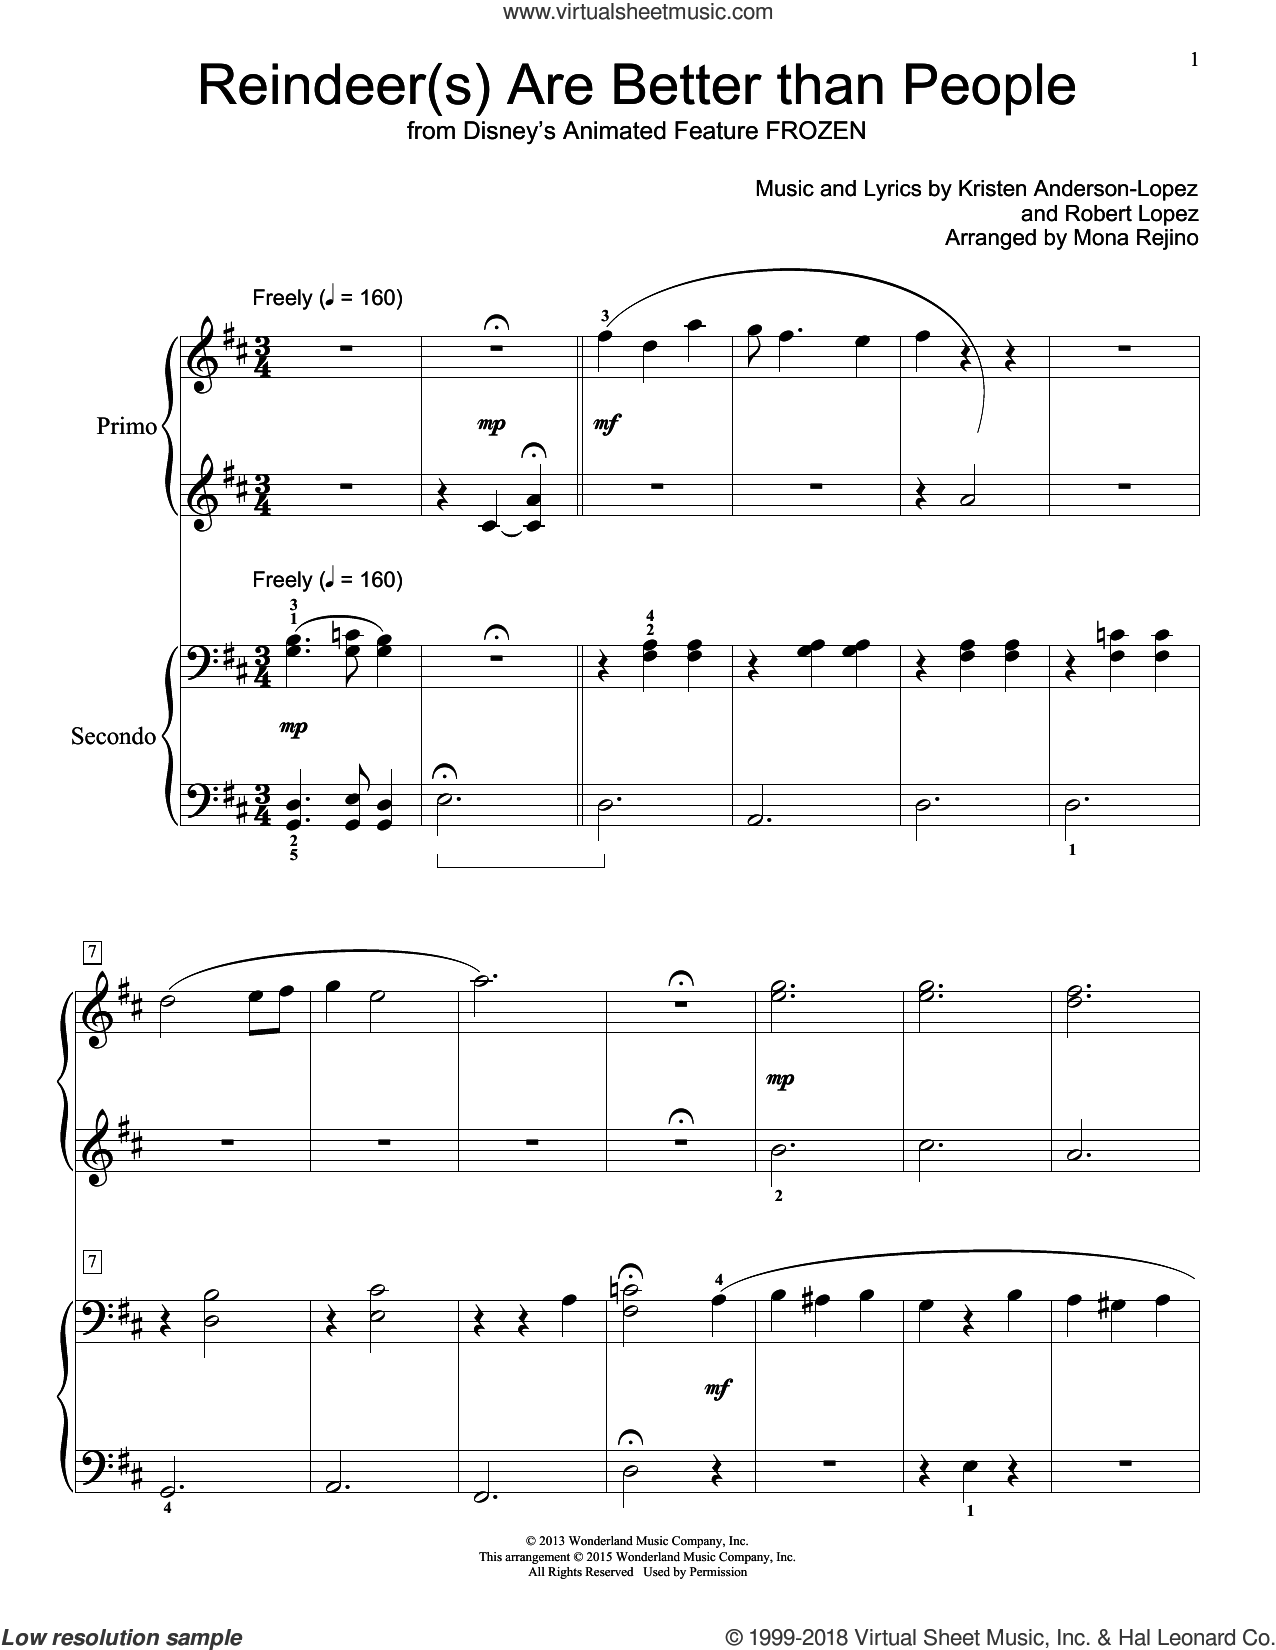 Reindeer(s) Are Better Than People (from Frozen) sheet music for piano four hands by Mona Rejino, Kristen Anderson-Lopez and Robert Lopez, intermediate skill level